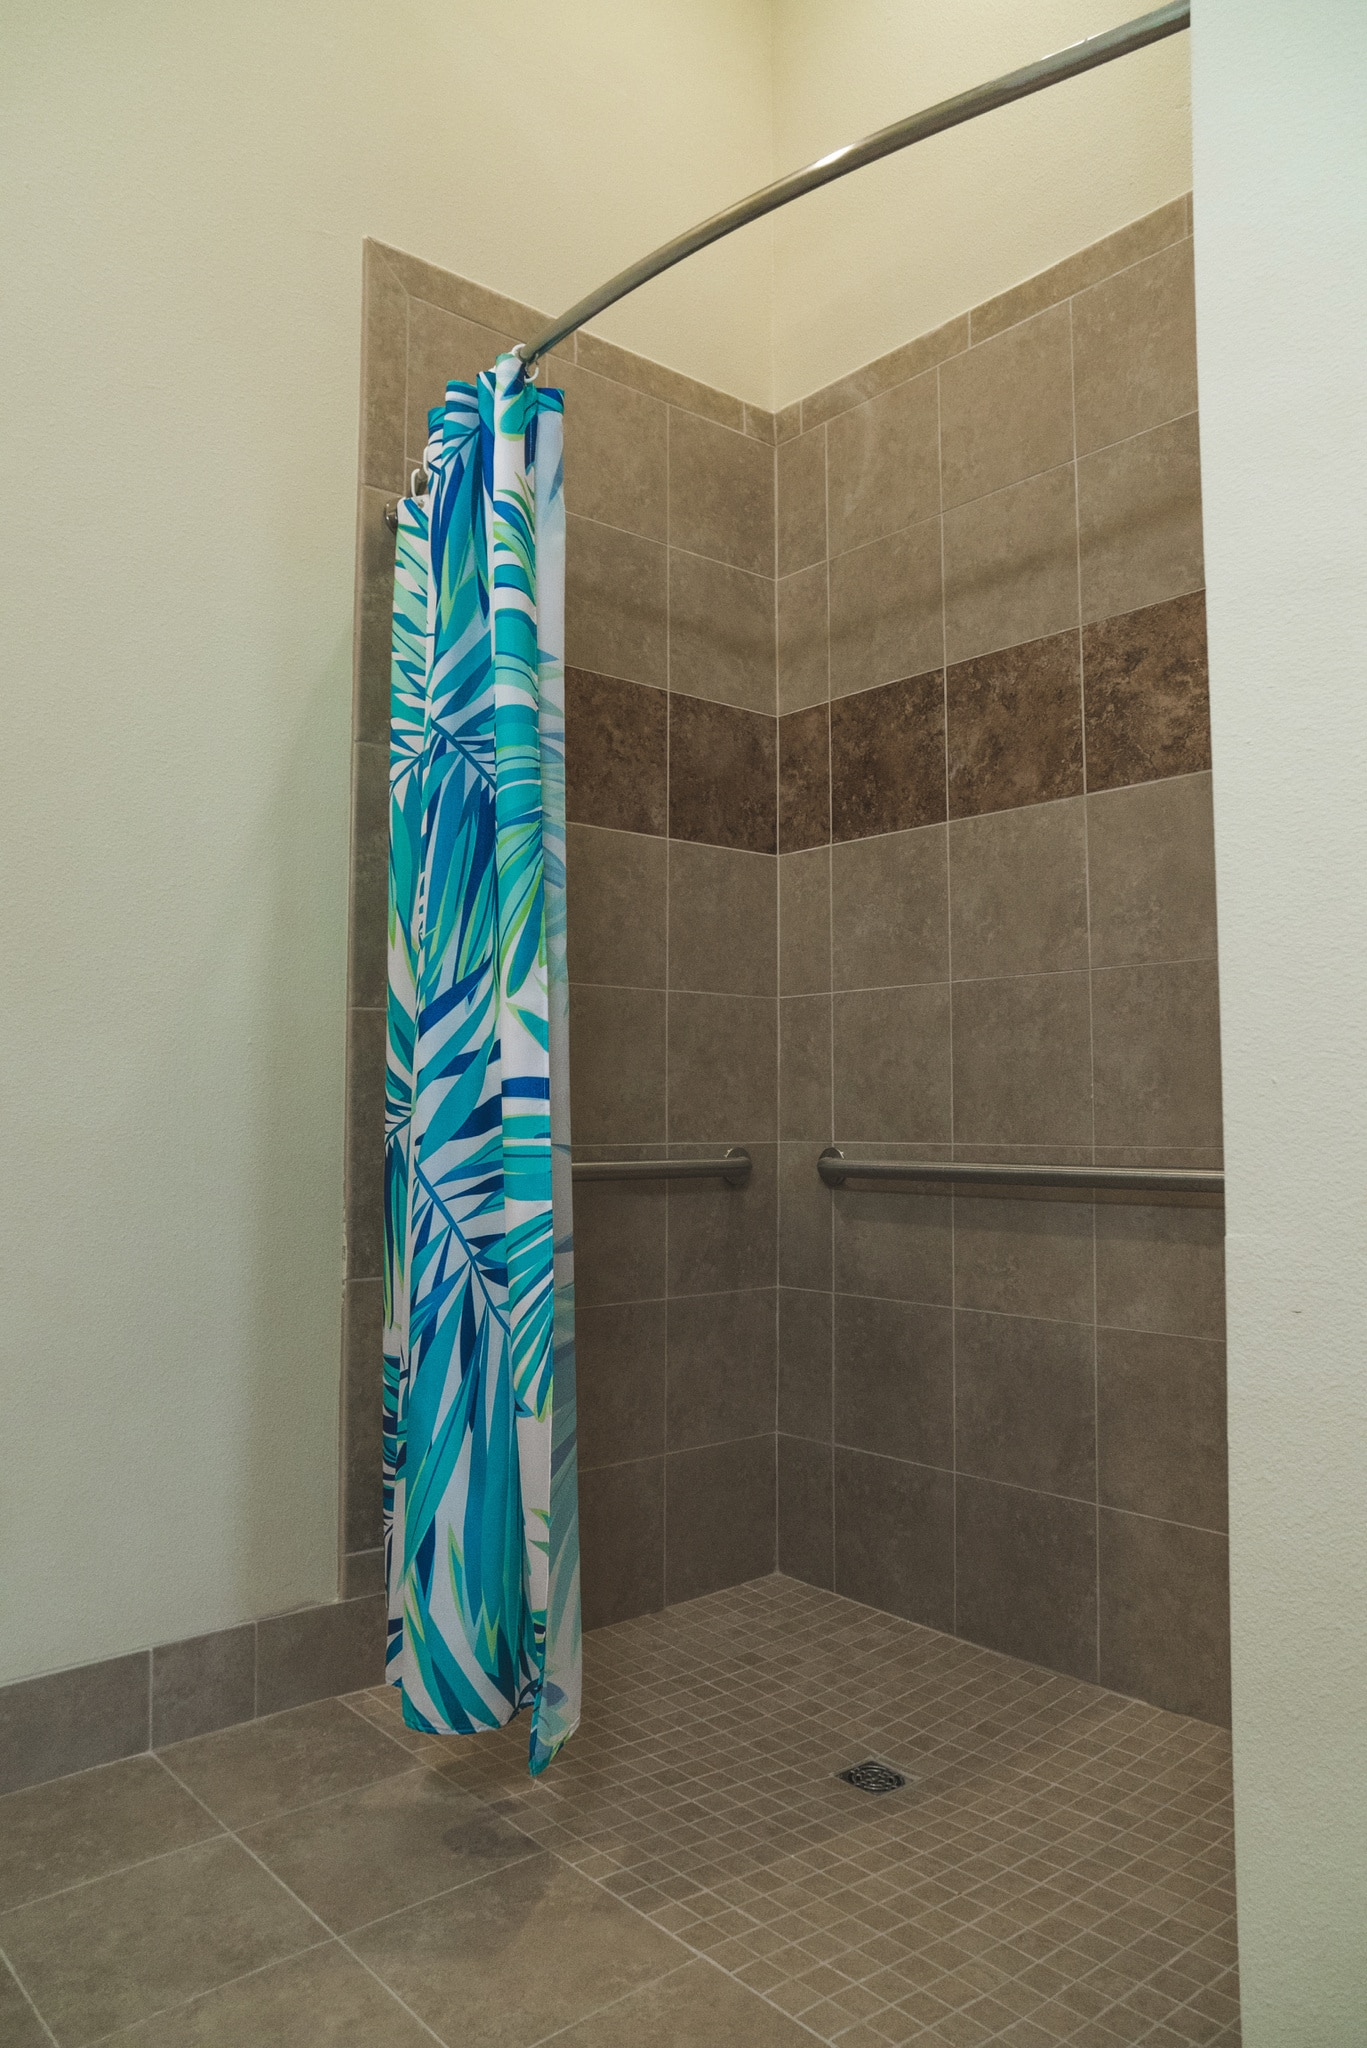 Our Sarasota community offers curbless, walk-in showers with grab bars to make showering as easy as possible for our residents.